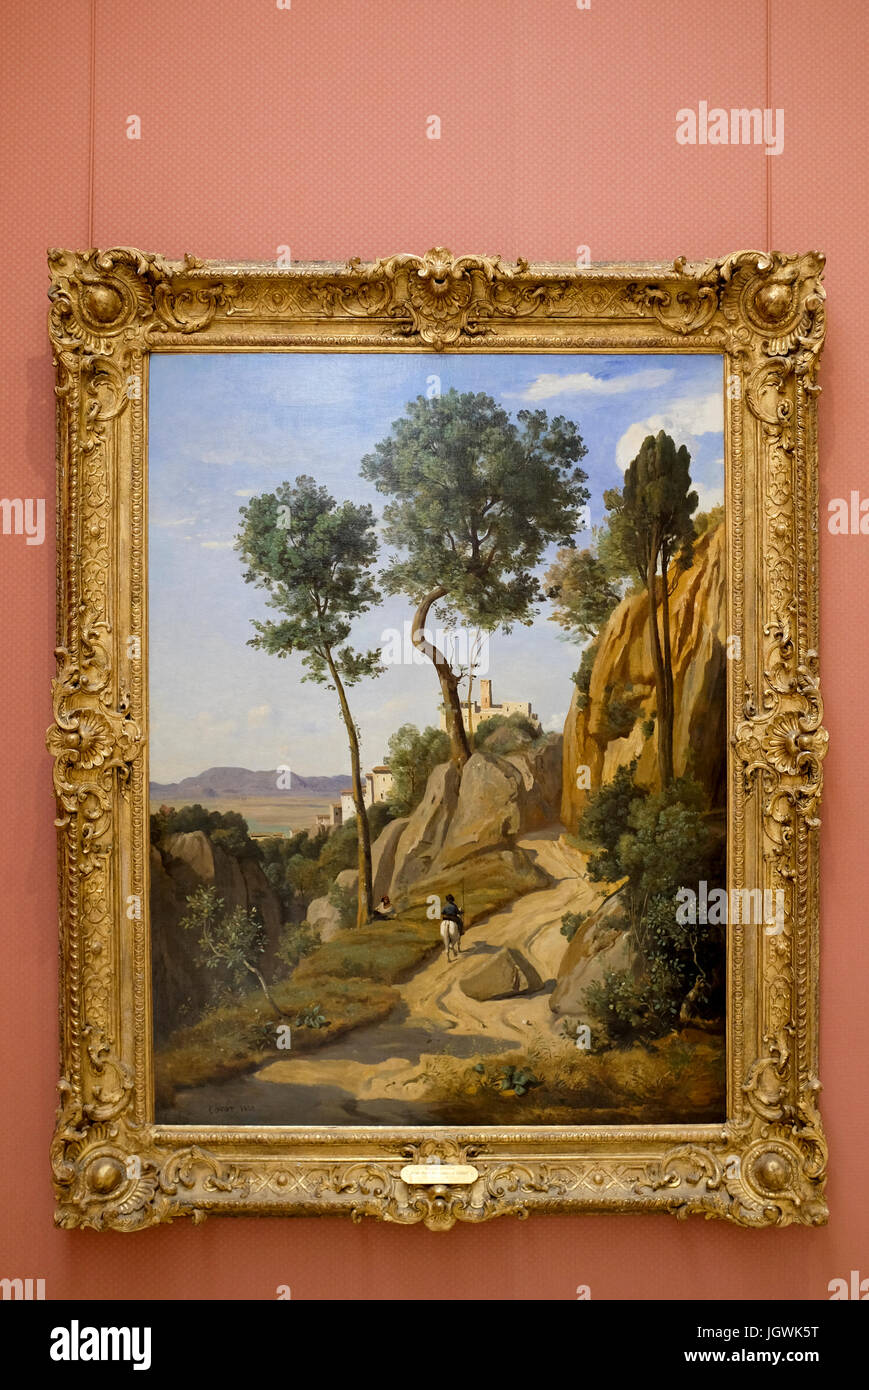 Corot Painting Immagini Corot Painting Fotos Stock Alamy